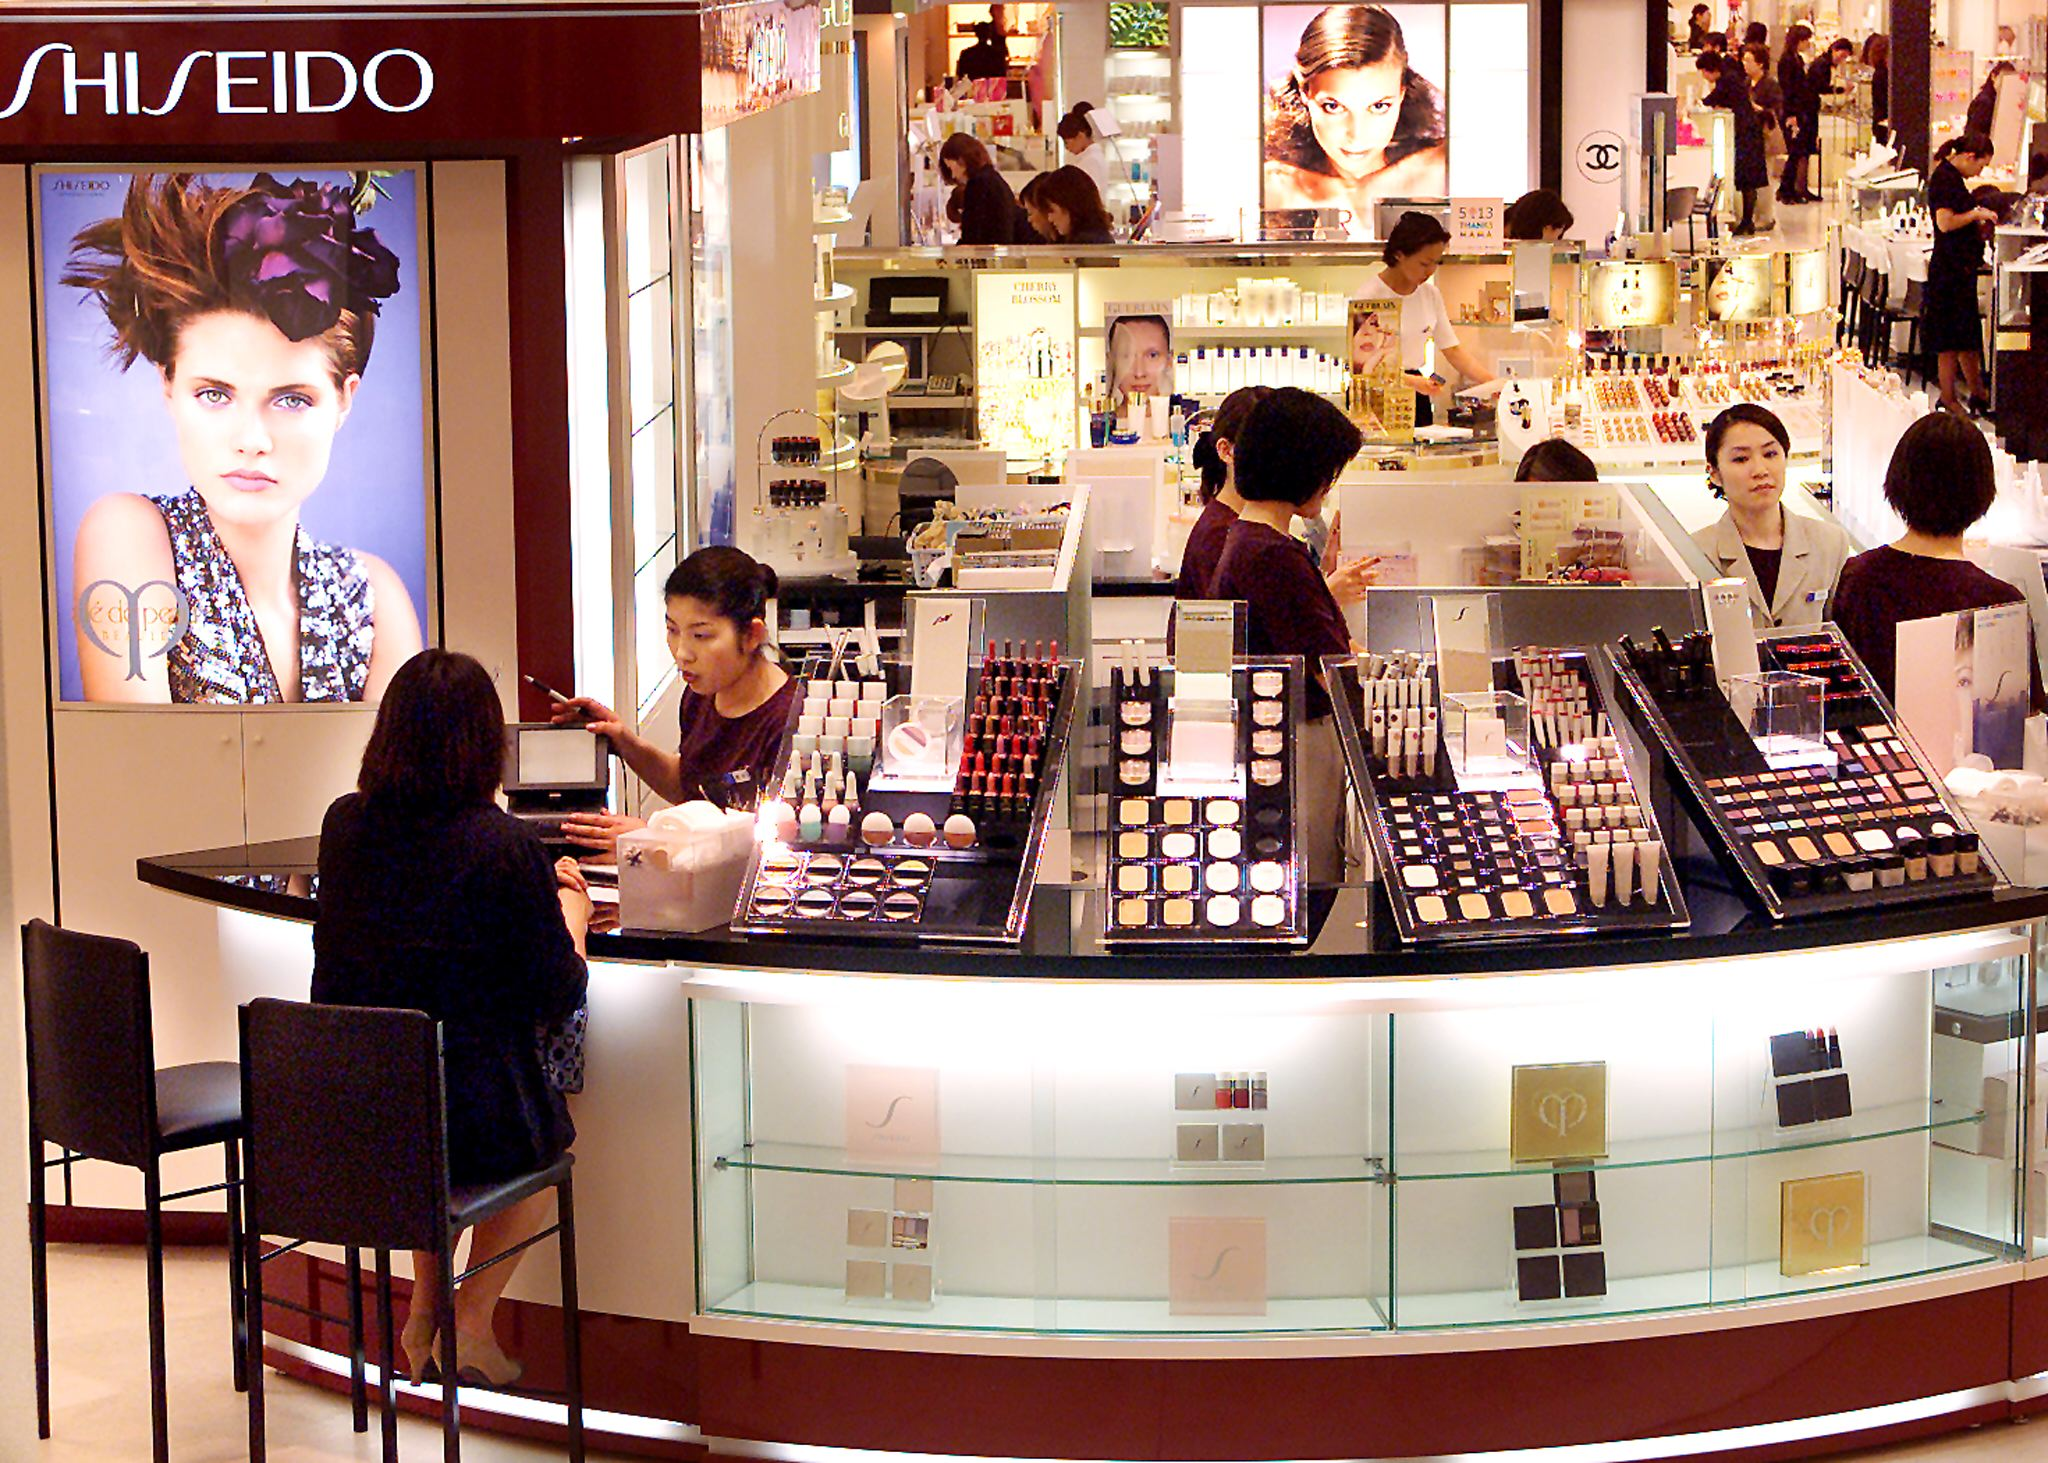 Japan's cosmetics giant Shiseido employees tend to